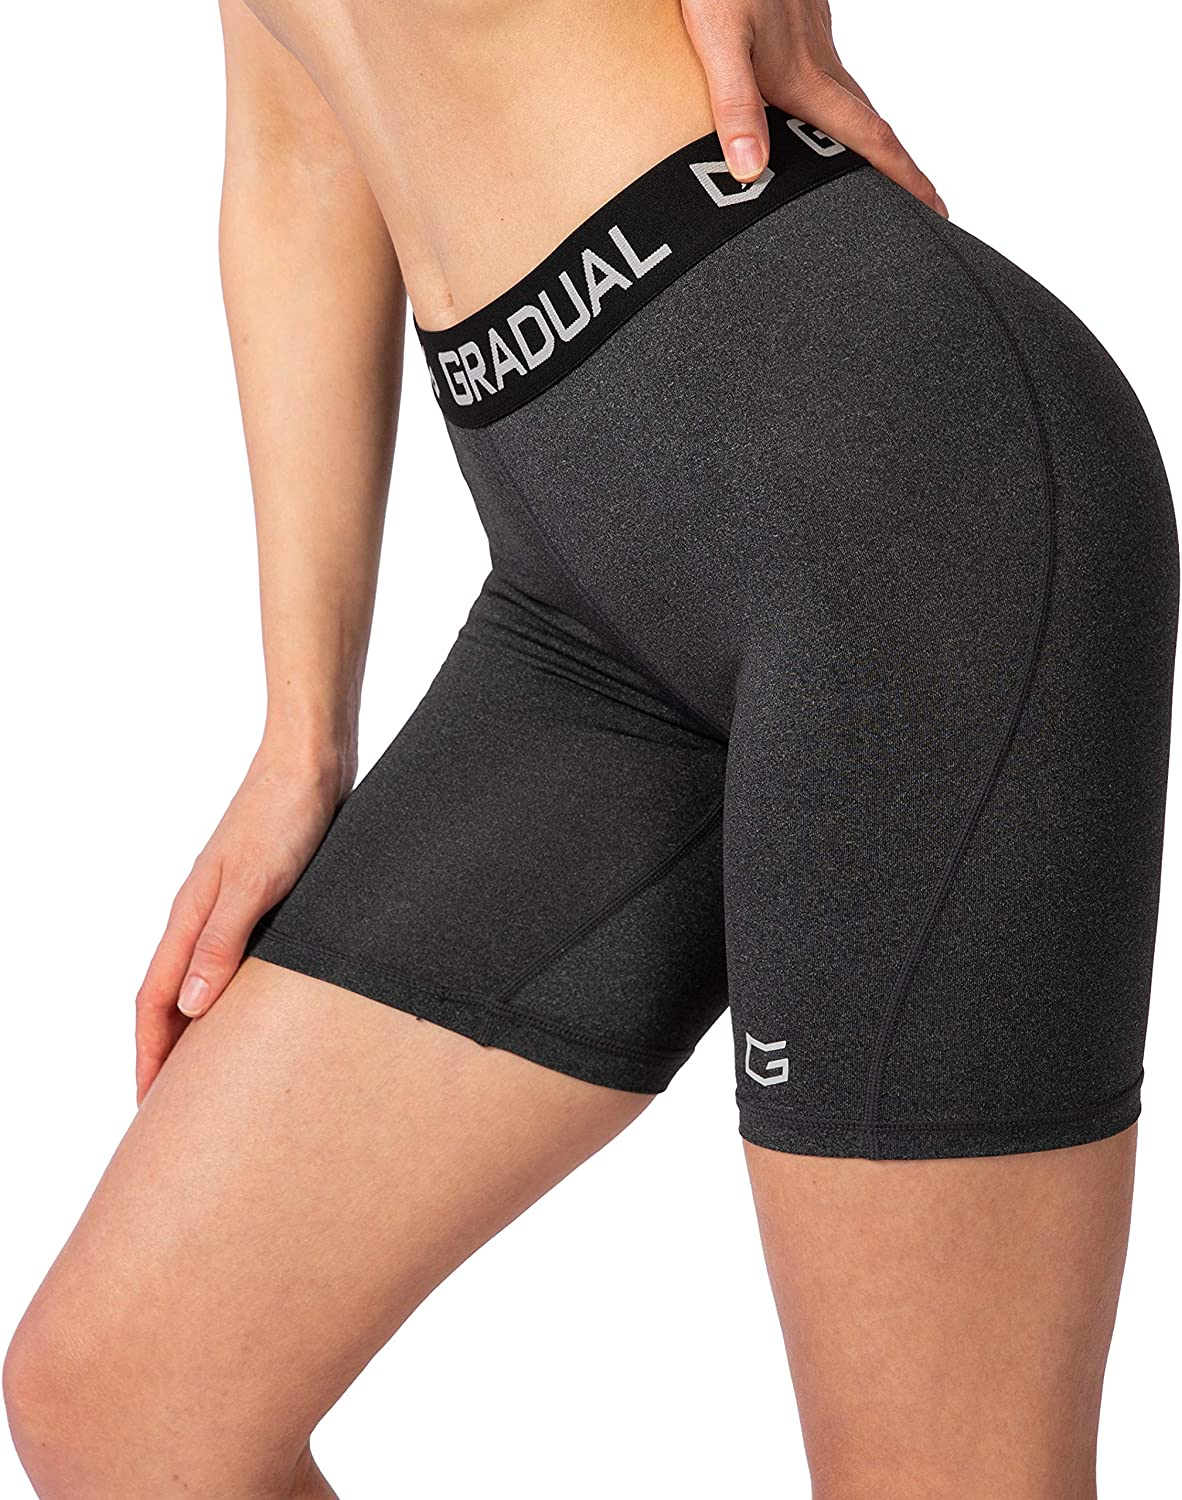 Womens Spandex Compression Volleyball Shorts 3 //7 Workout Pro Shorts for Women